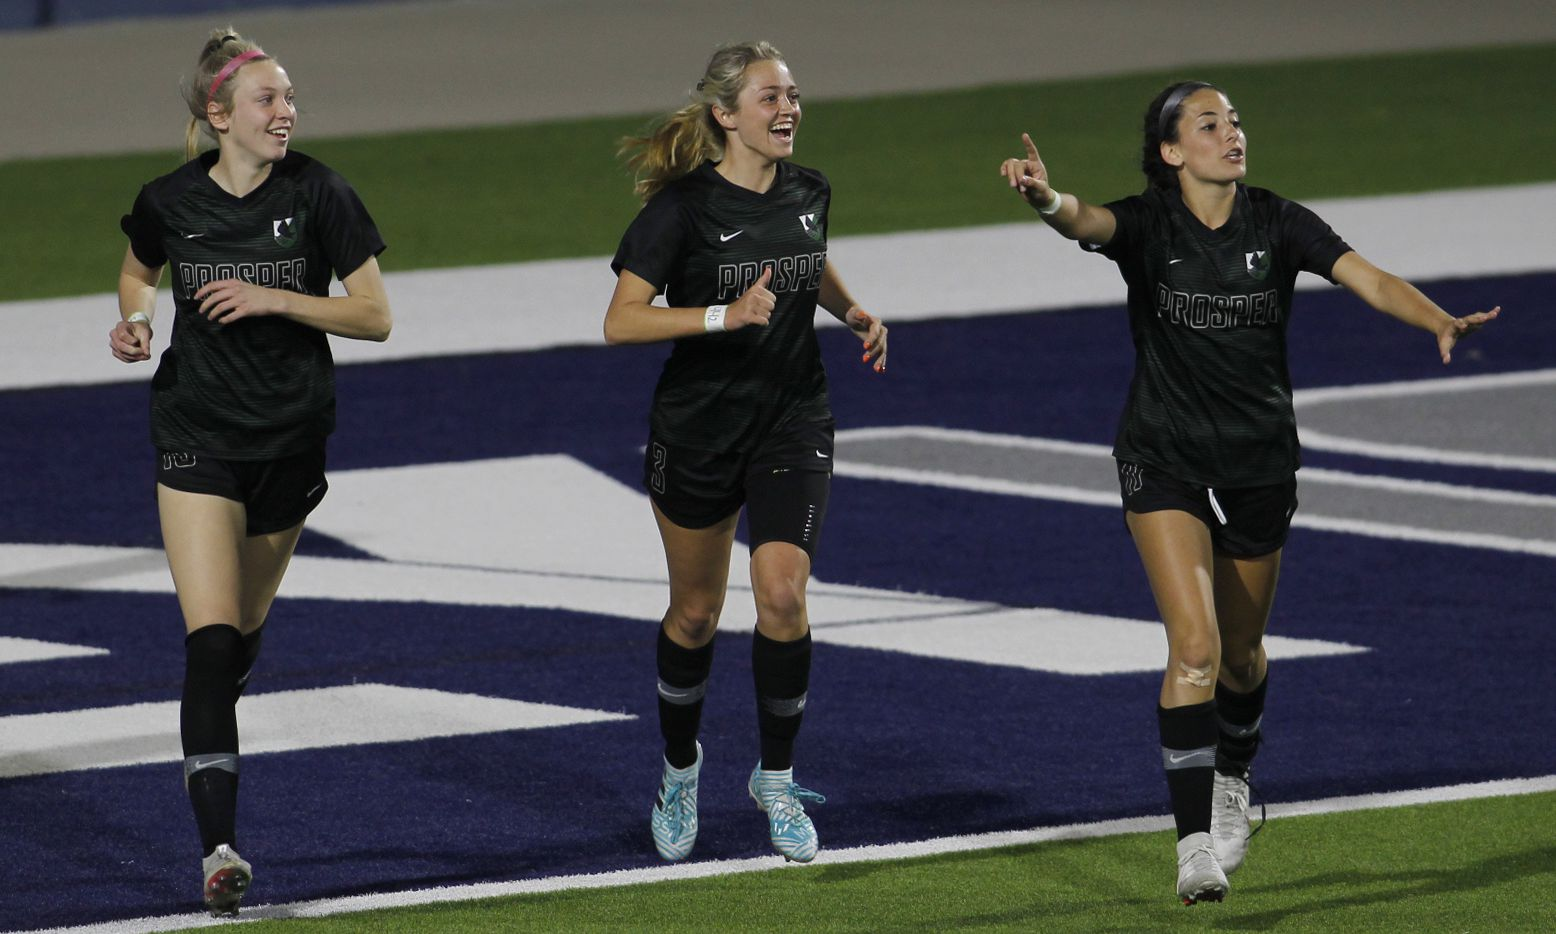 Framed by teammates Hadley Murrell (10), left, and Emma Yolinsky (11), right, Prosper forward Kaitlyn Giametta (3), center, is all smiles as the trio celebrated her goal against Coppell during first half action. The two teams played their Class 6A bi-district girls soccer playoff game at McKinney ISD Stadium in McKinney on March 26, 2021.